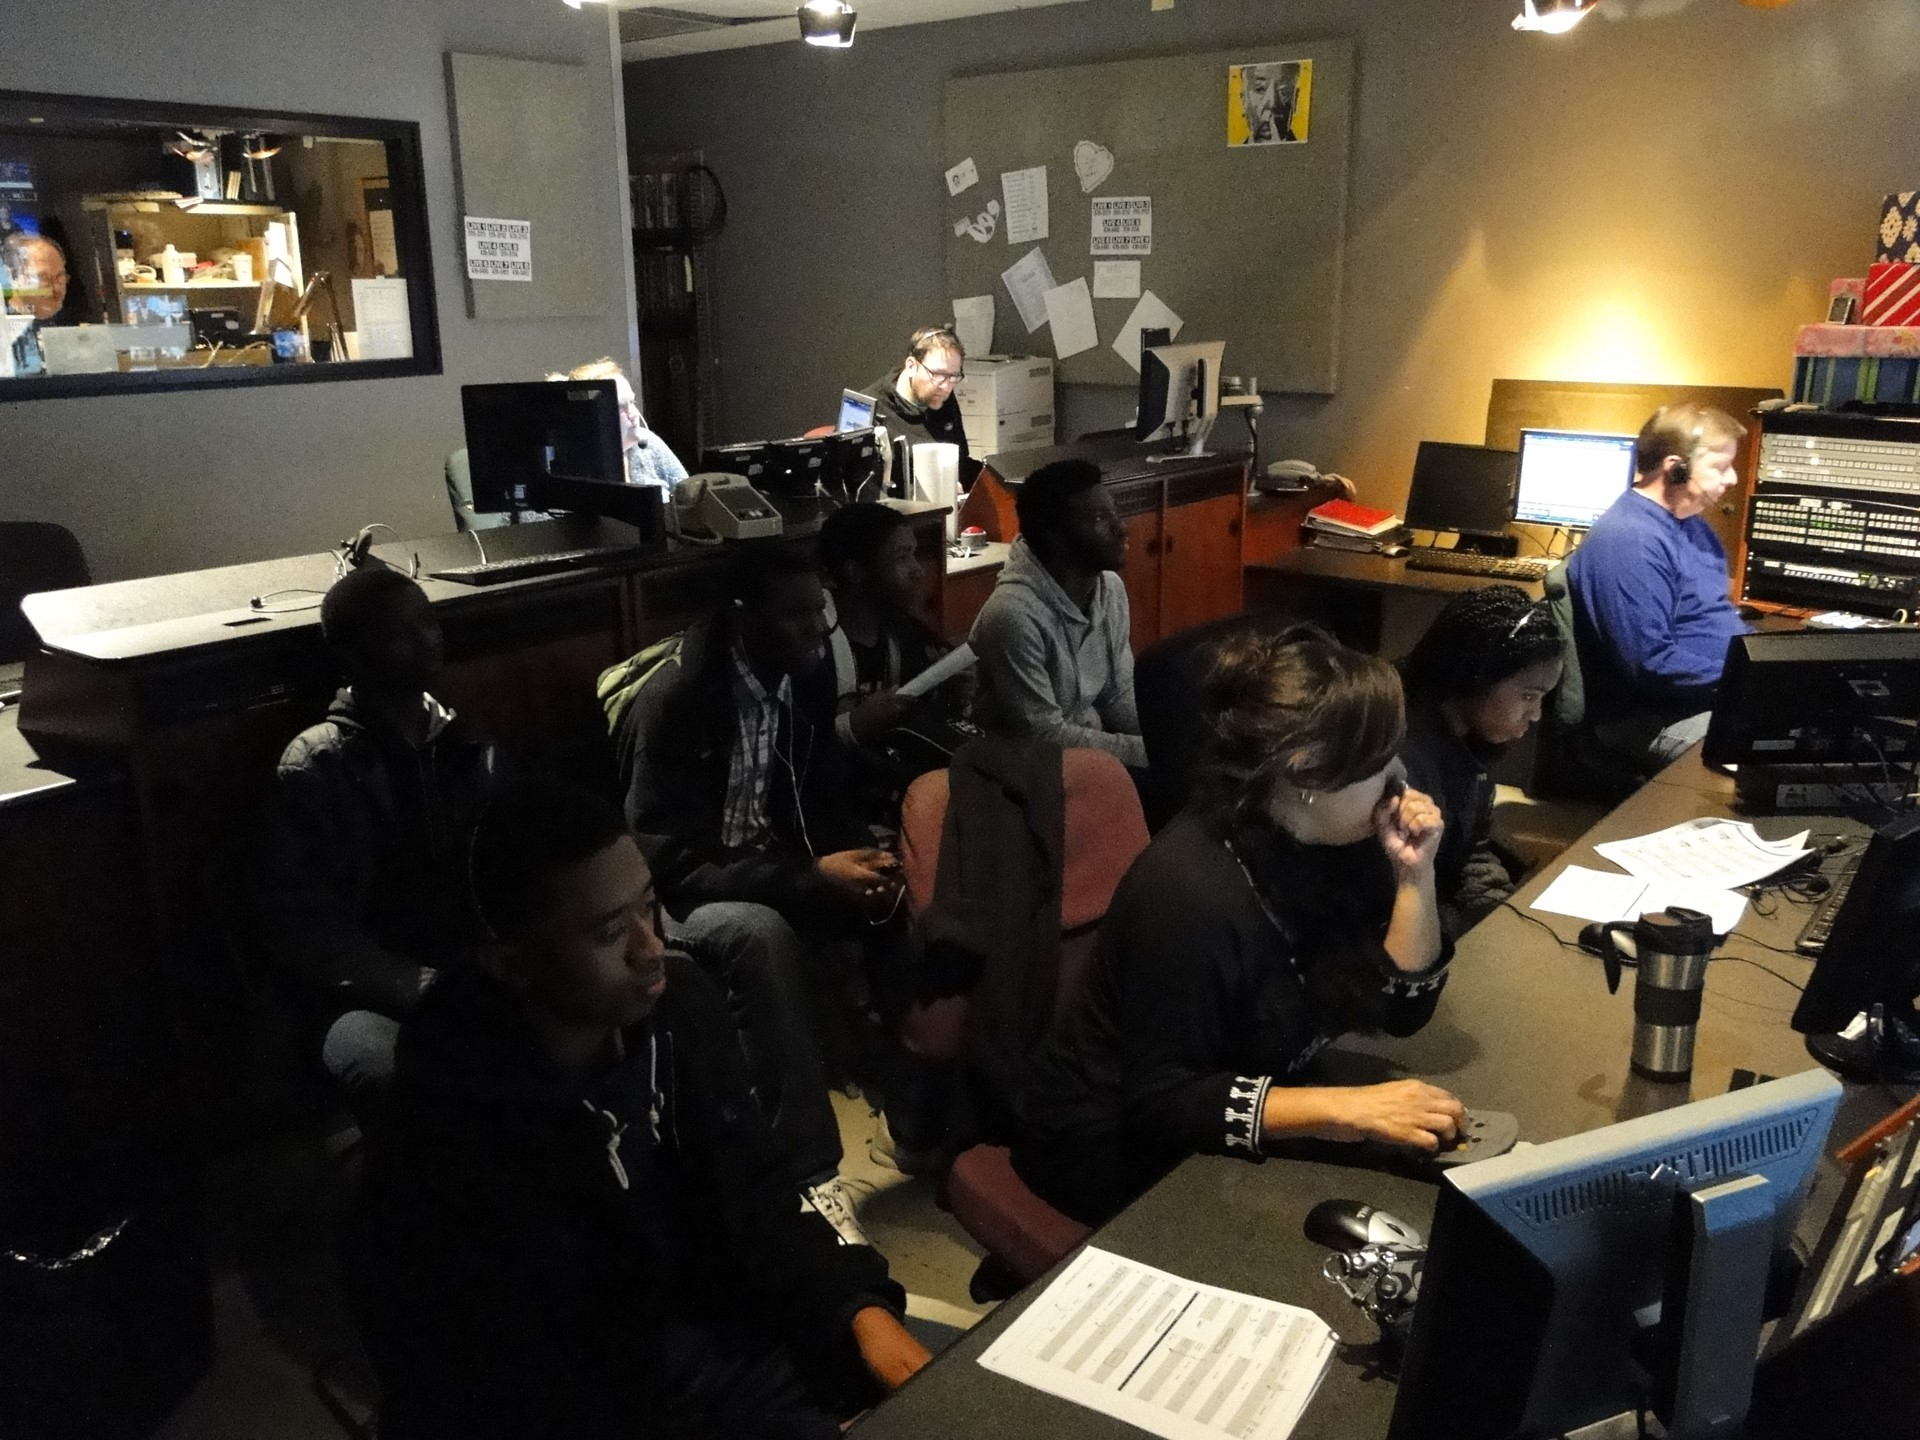 Students observing the action in the control room.